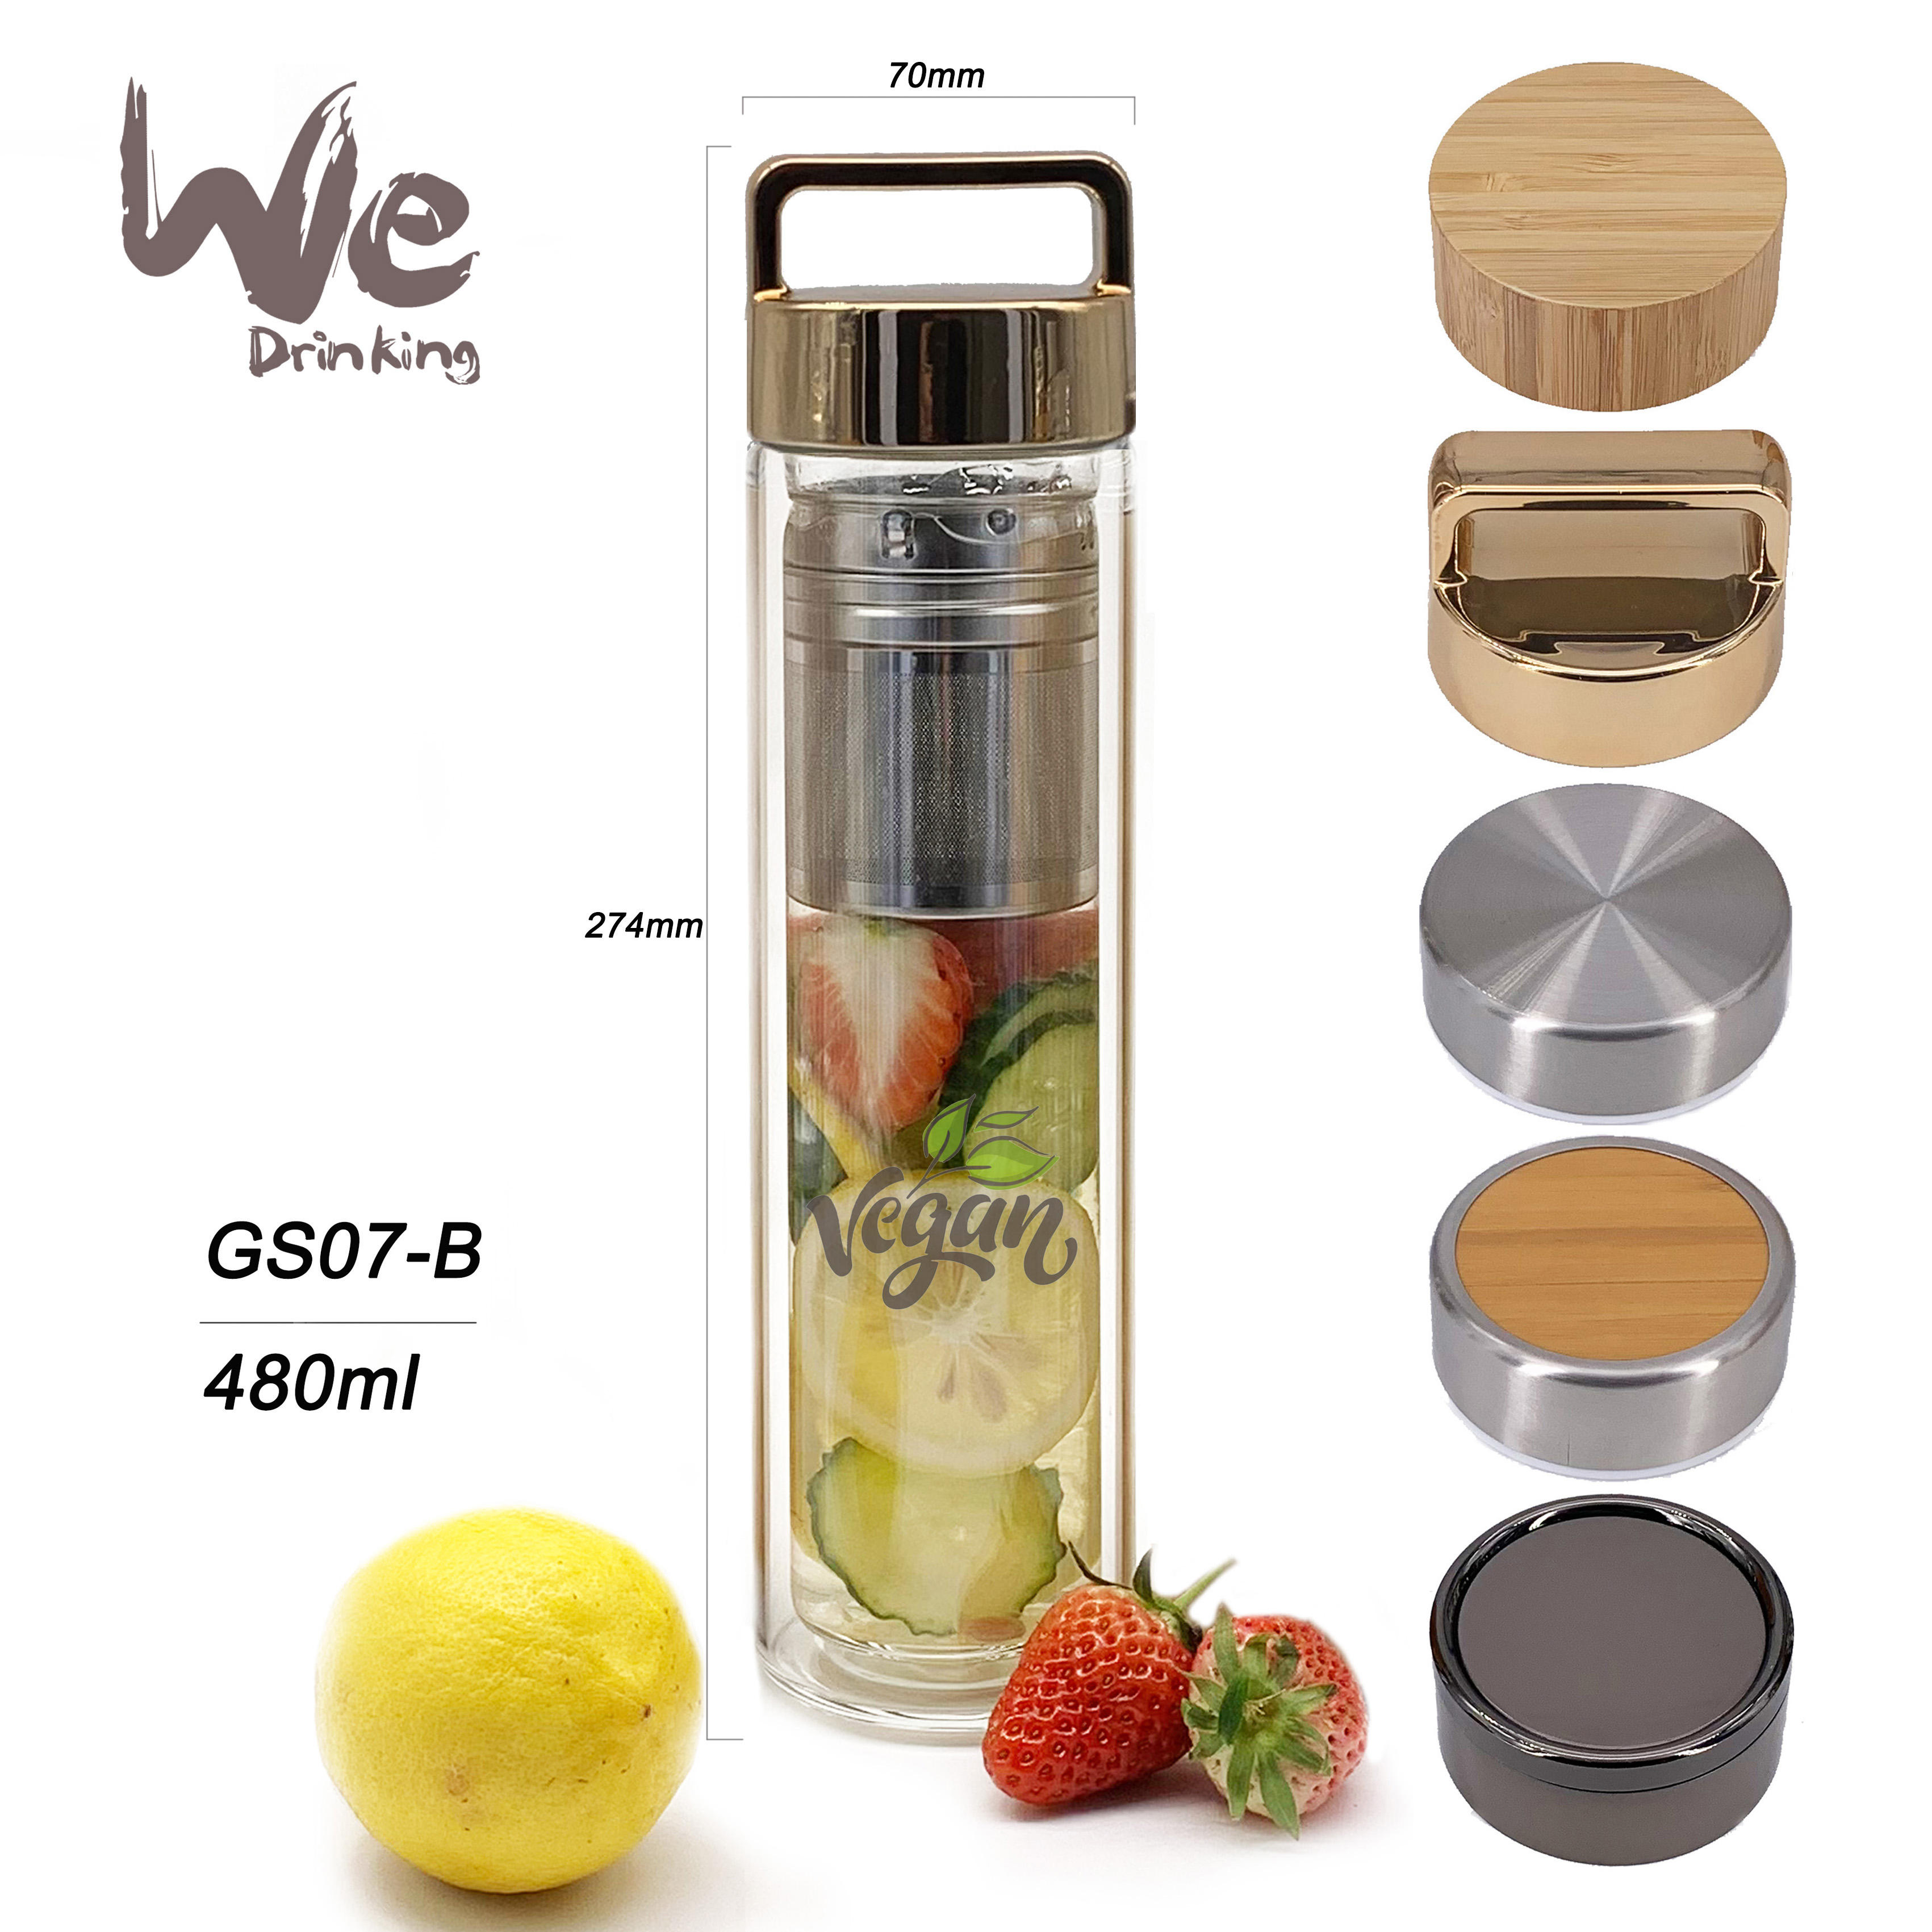 GS07-B 480ml High Borosilicate Glass Bottle with Filter and Handle Lid for Loose Leaf Tea Coffee and Milk